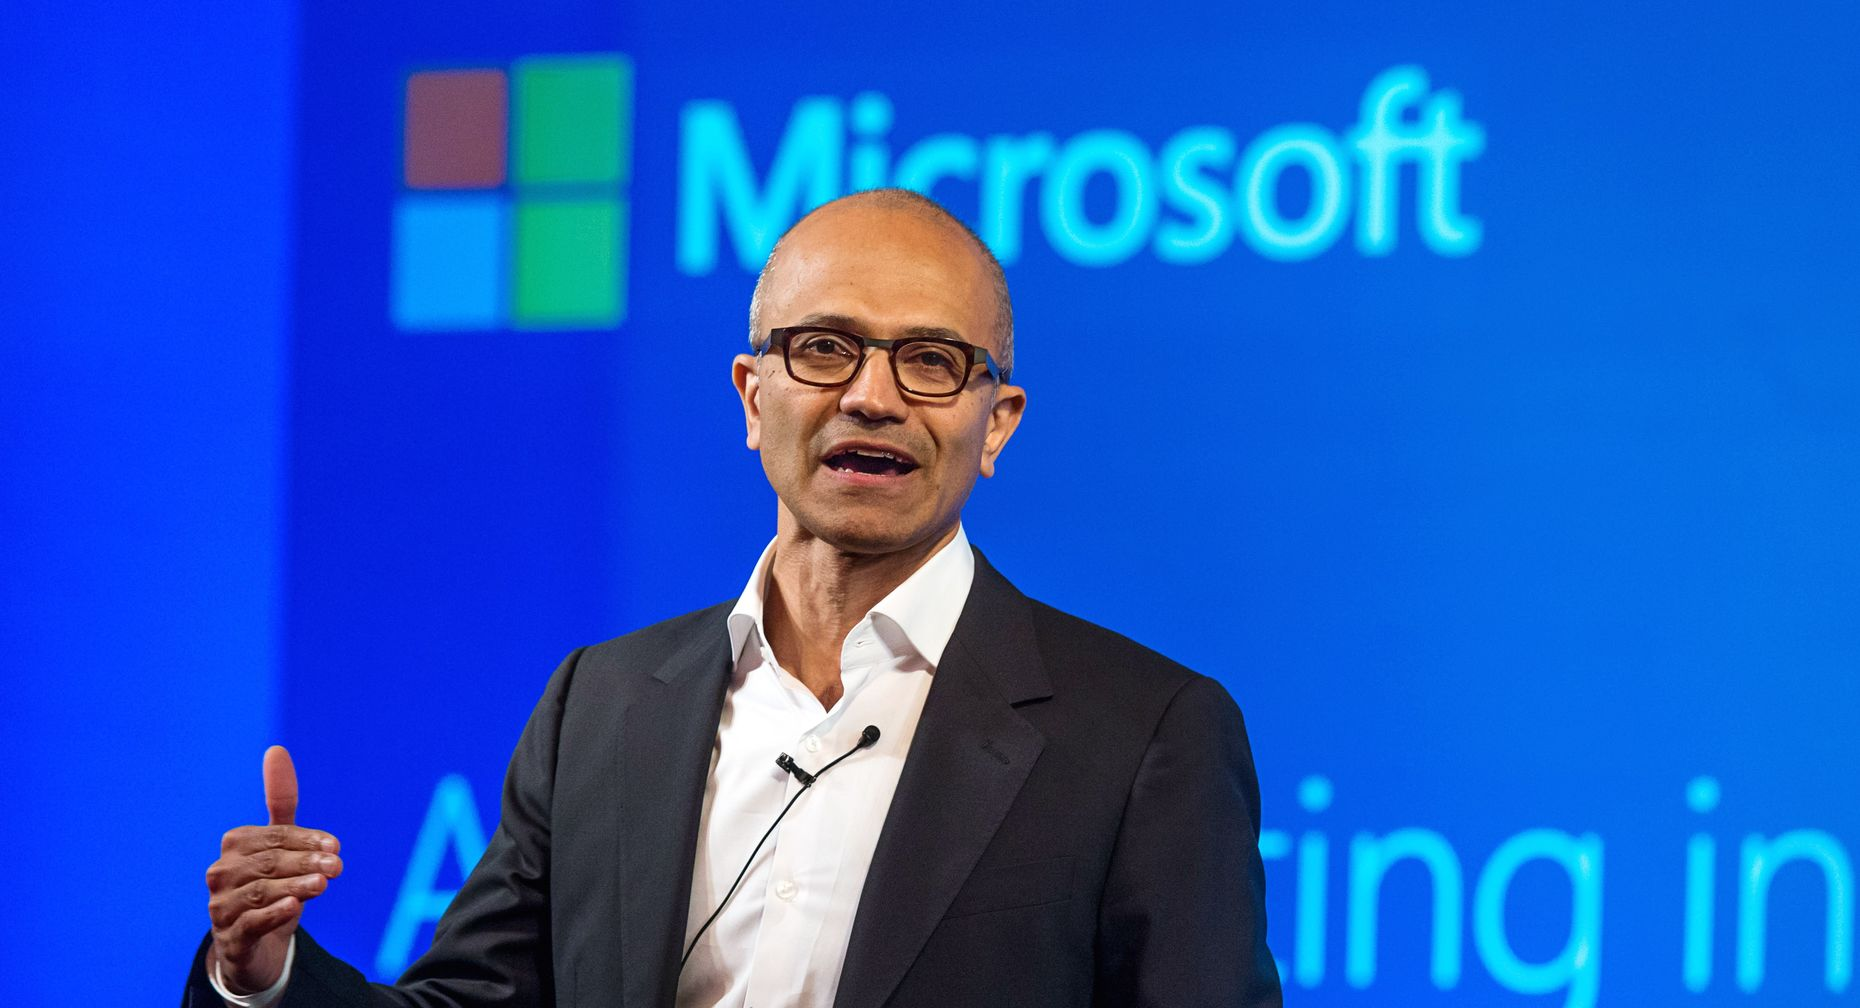 Microsoft CEO Satya Nadella. Photo by Bloomberg.